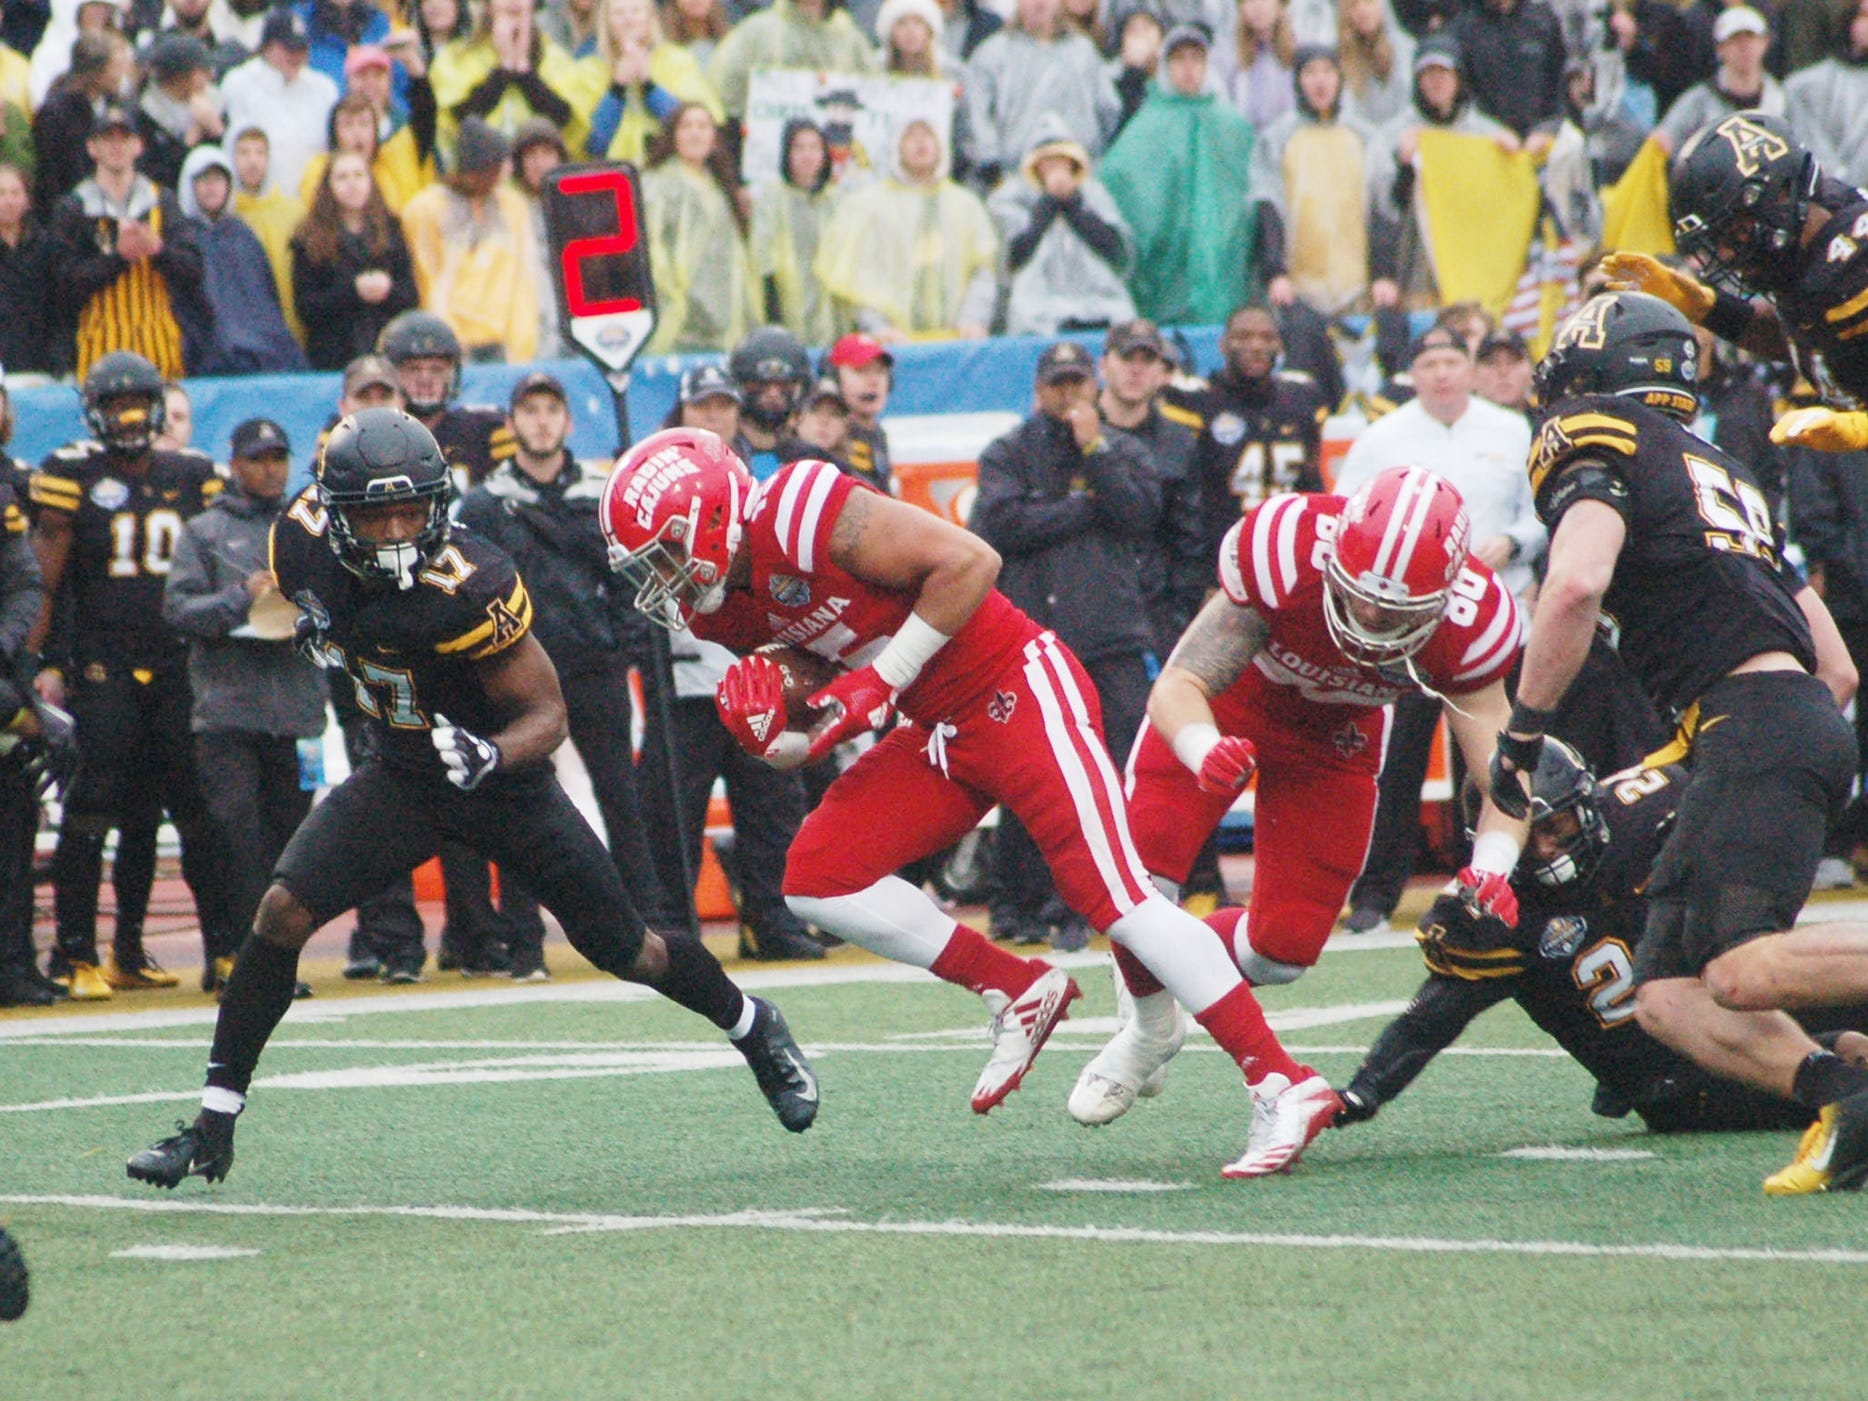 UL running back Elijah Mitchell runs through the Appalachian State defensive line as Tae Hayes closes in to make the tackle Saturday in the Sun Belt Conference Championship Game in Boone, North Carolina.